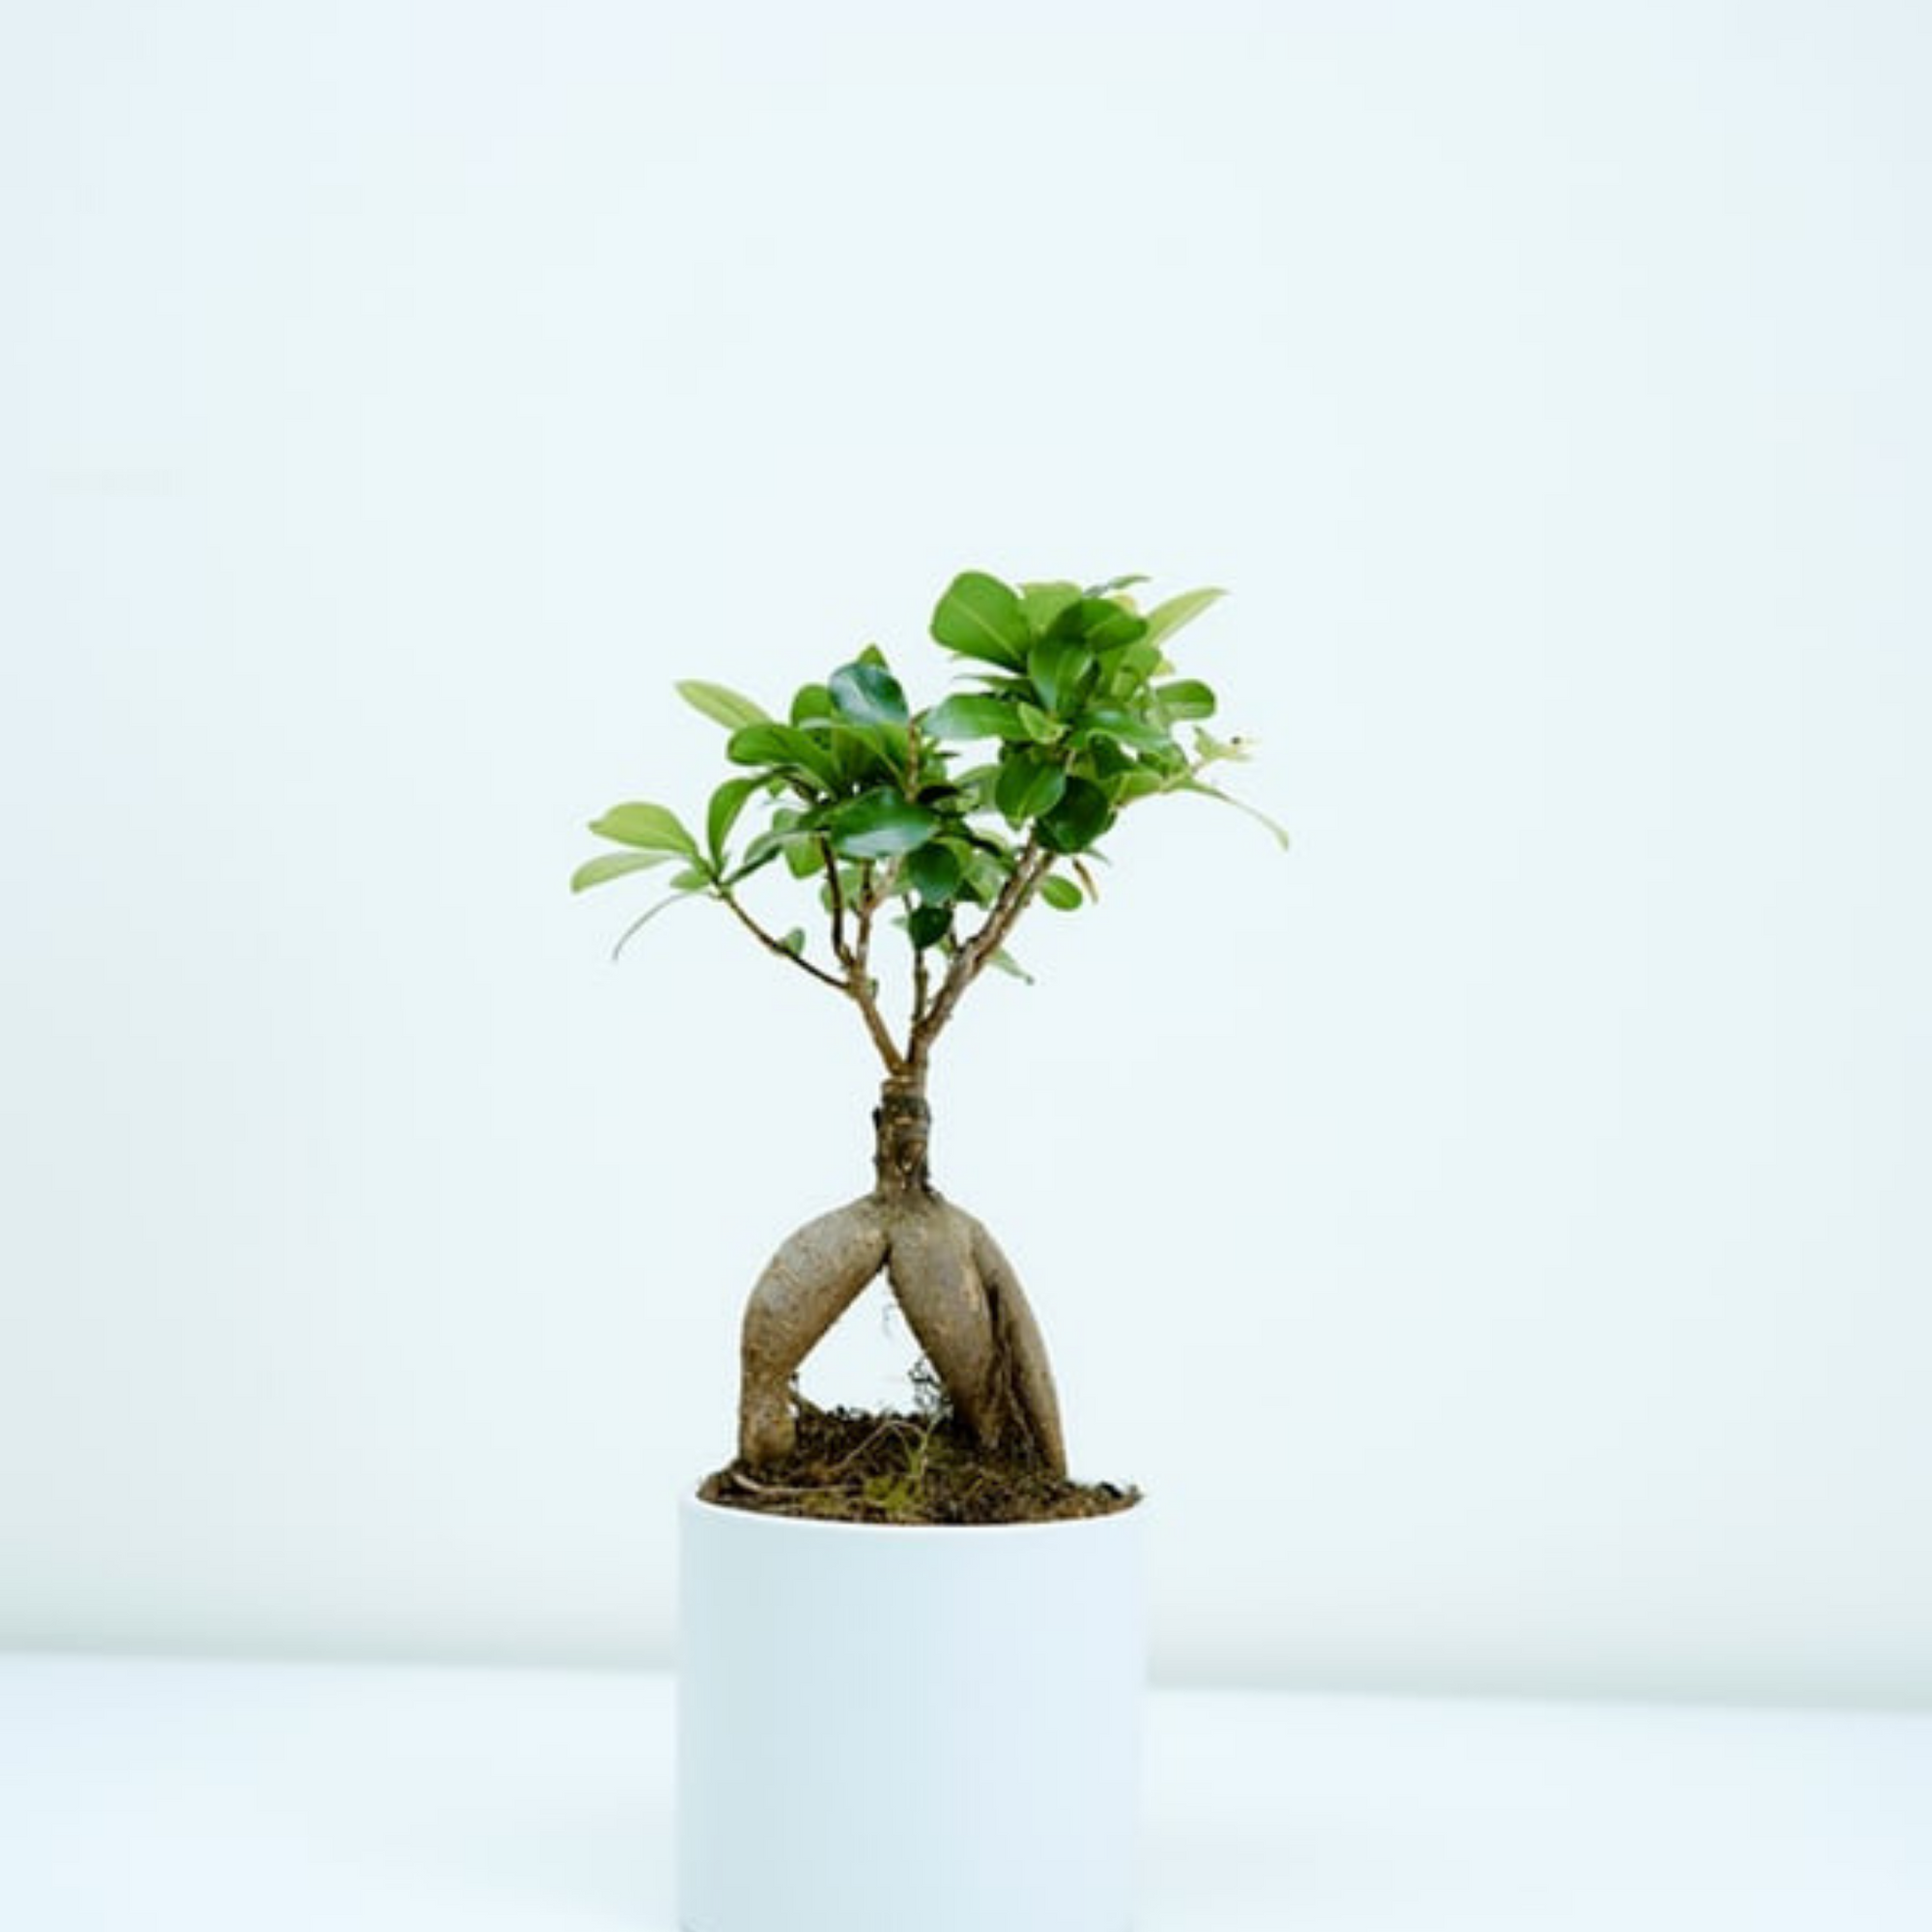 Displaying your Bonsai Tree at Home